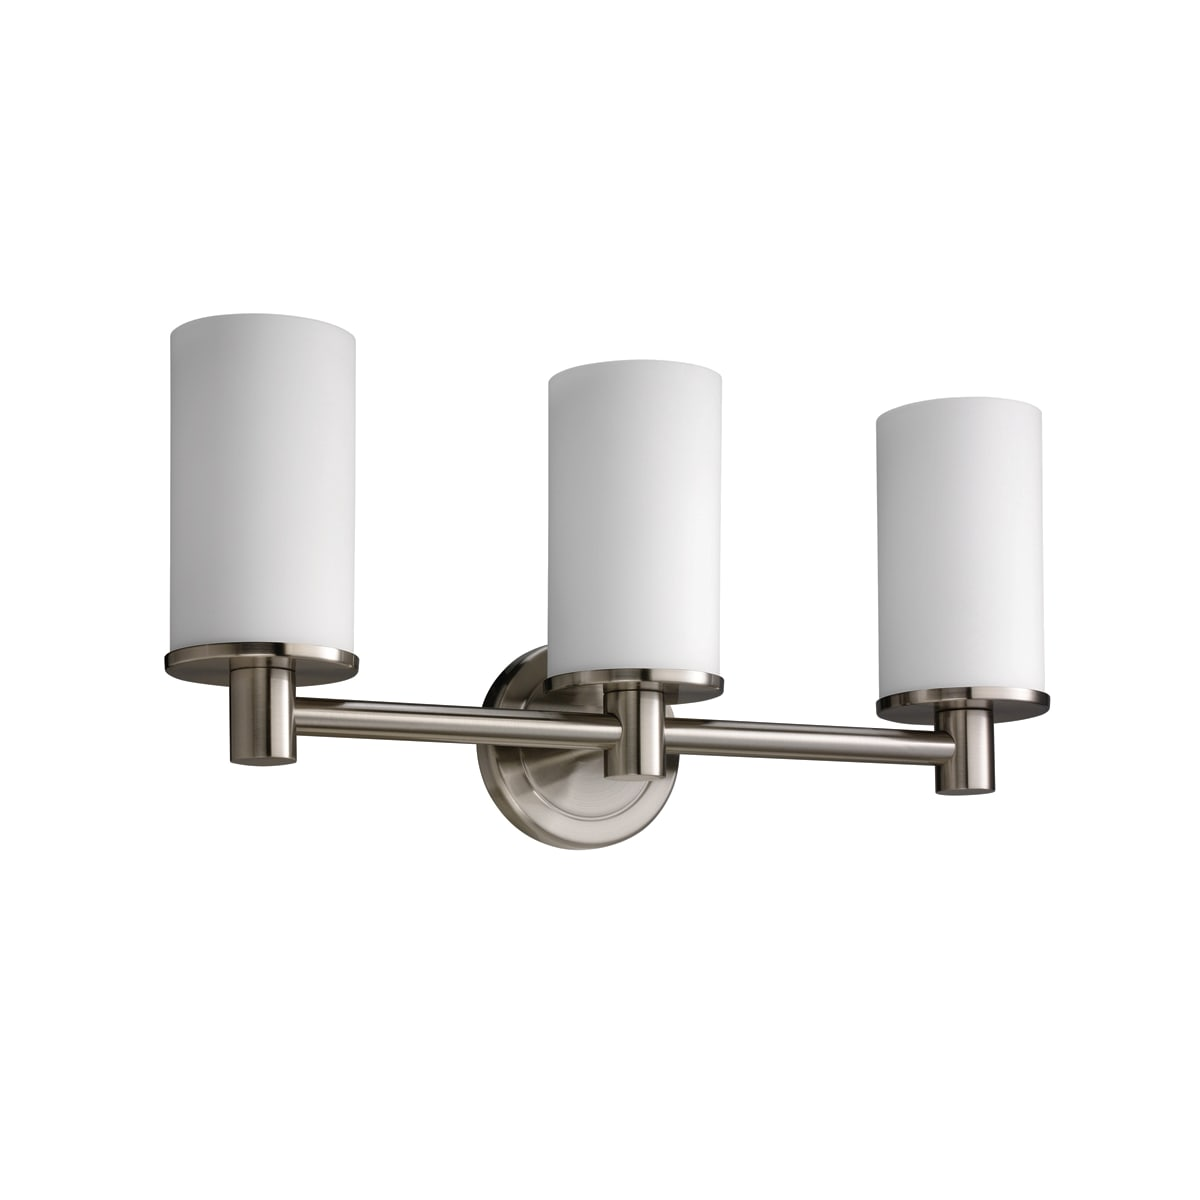 Gatco 1687 Satin Nickel Triple Sconce